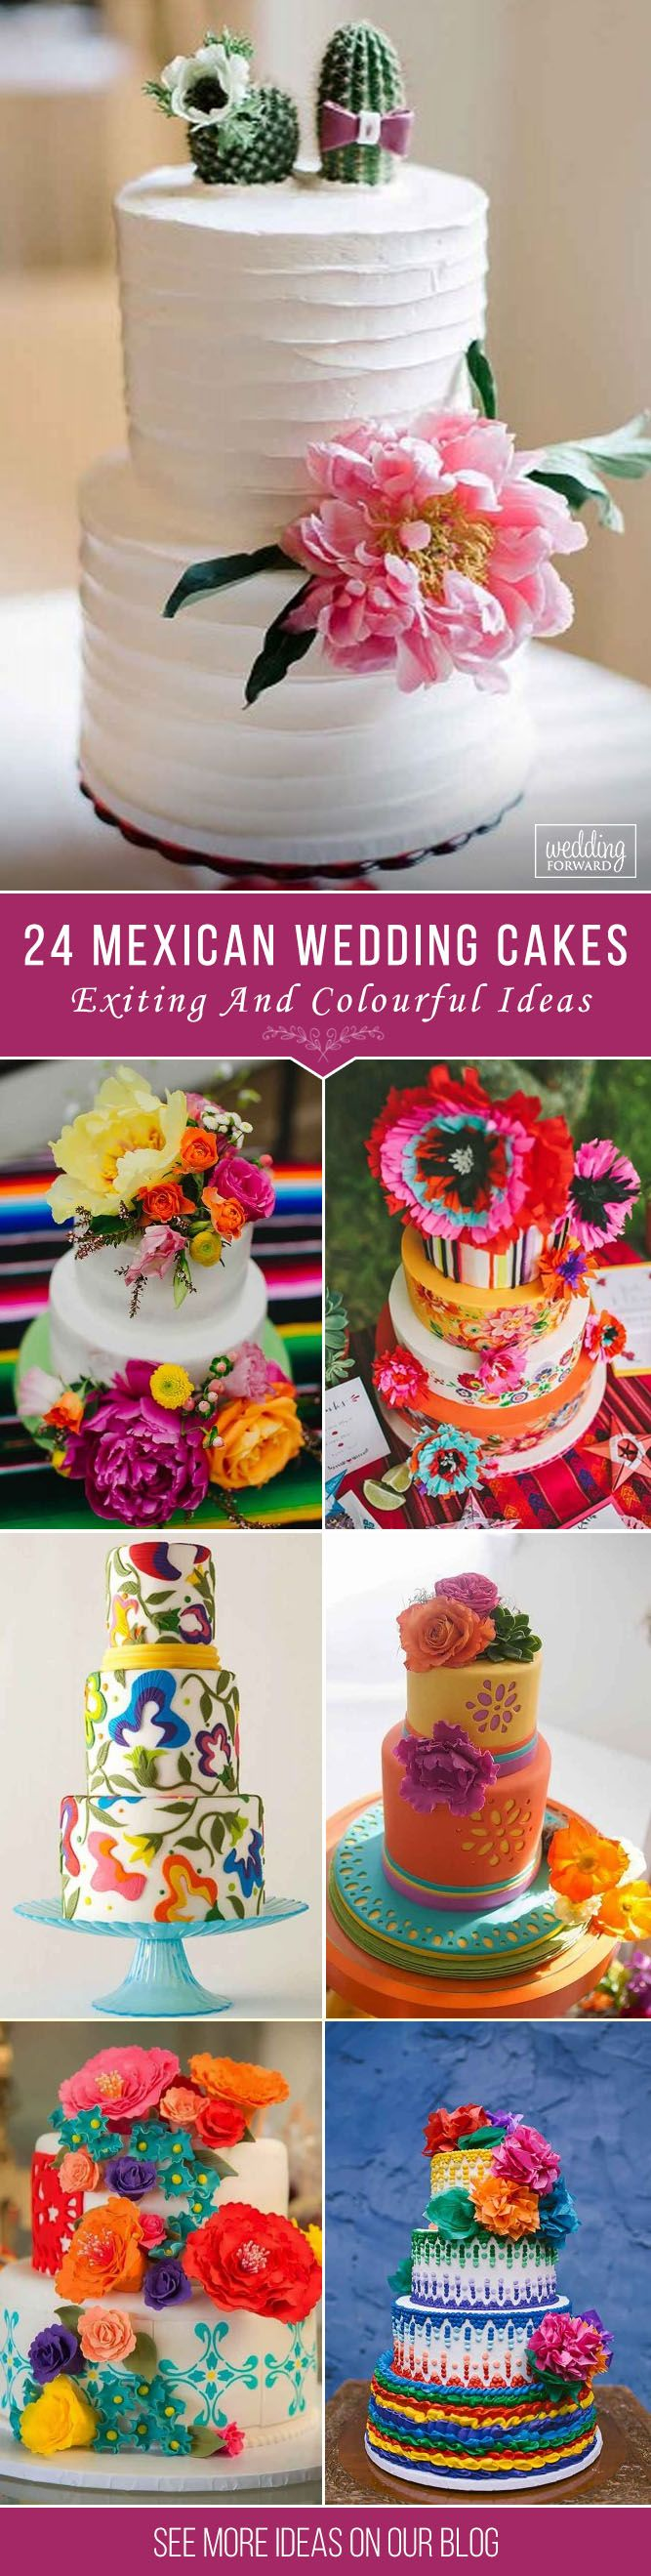 24 Exciting & Colourful Mexican Wedding Cake Ideas ❤ Mexican wedding cake could be very funny and creative. There are four rules for such kind of cake creation. See our gallery and look for the bonus! See more: http://www.weddingforward.com/mexican-wedding-cake-ideas/ #wedding #cakes